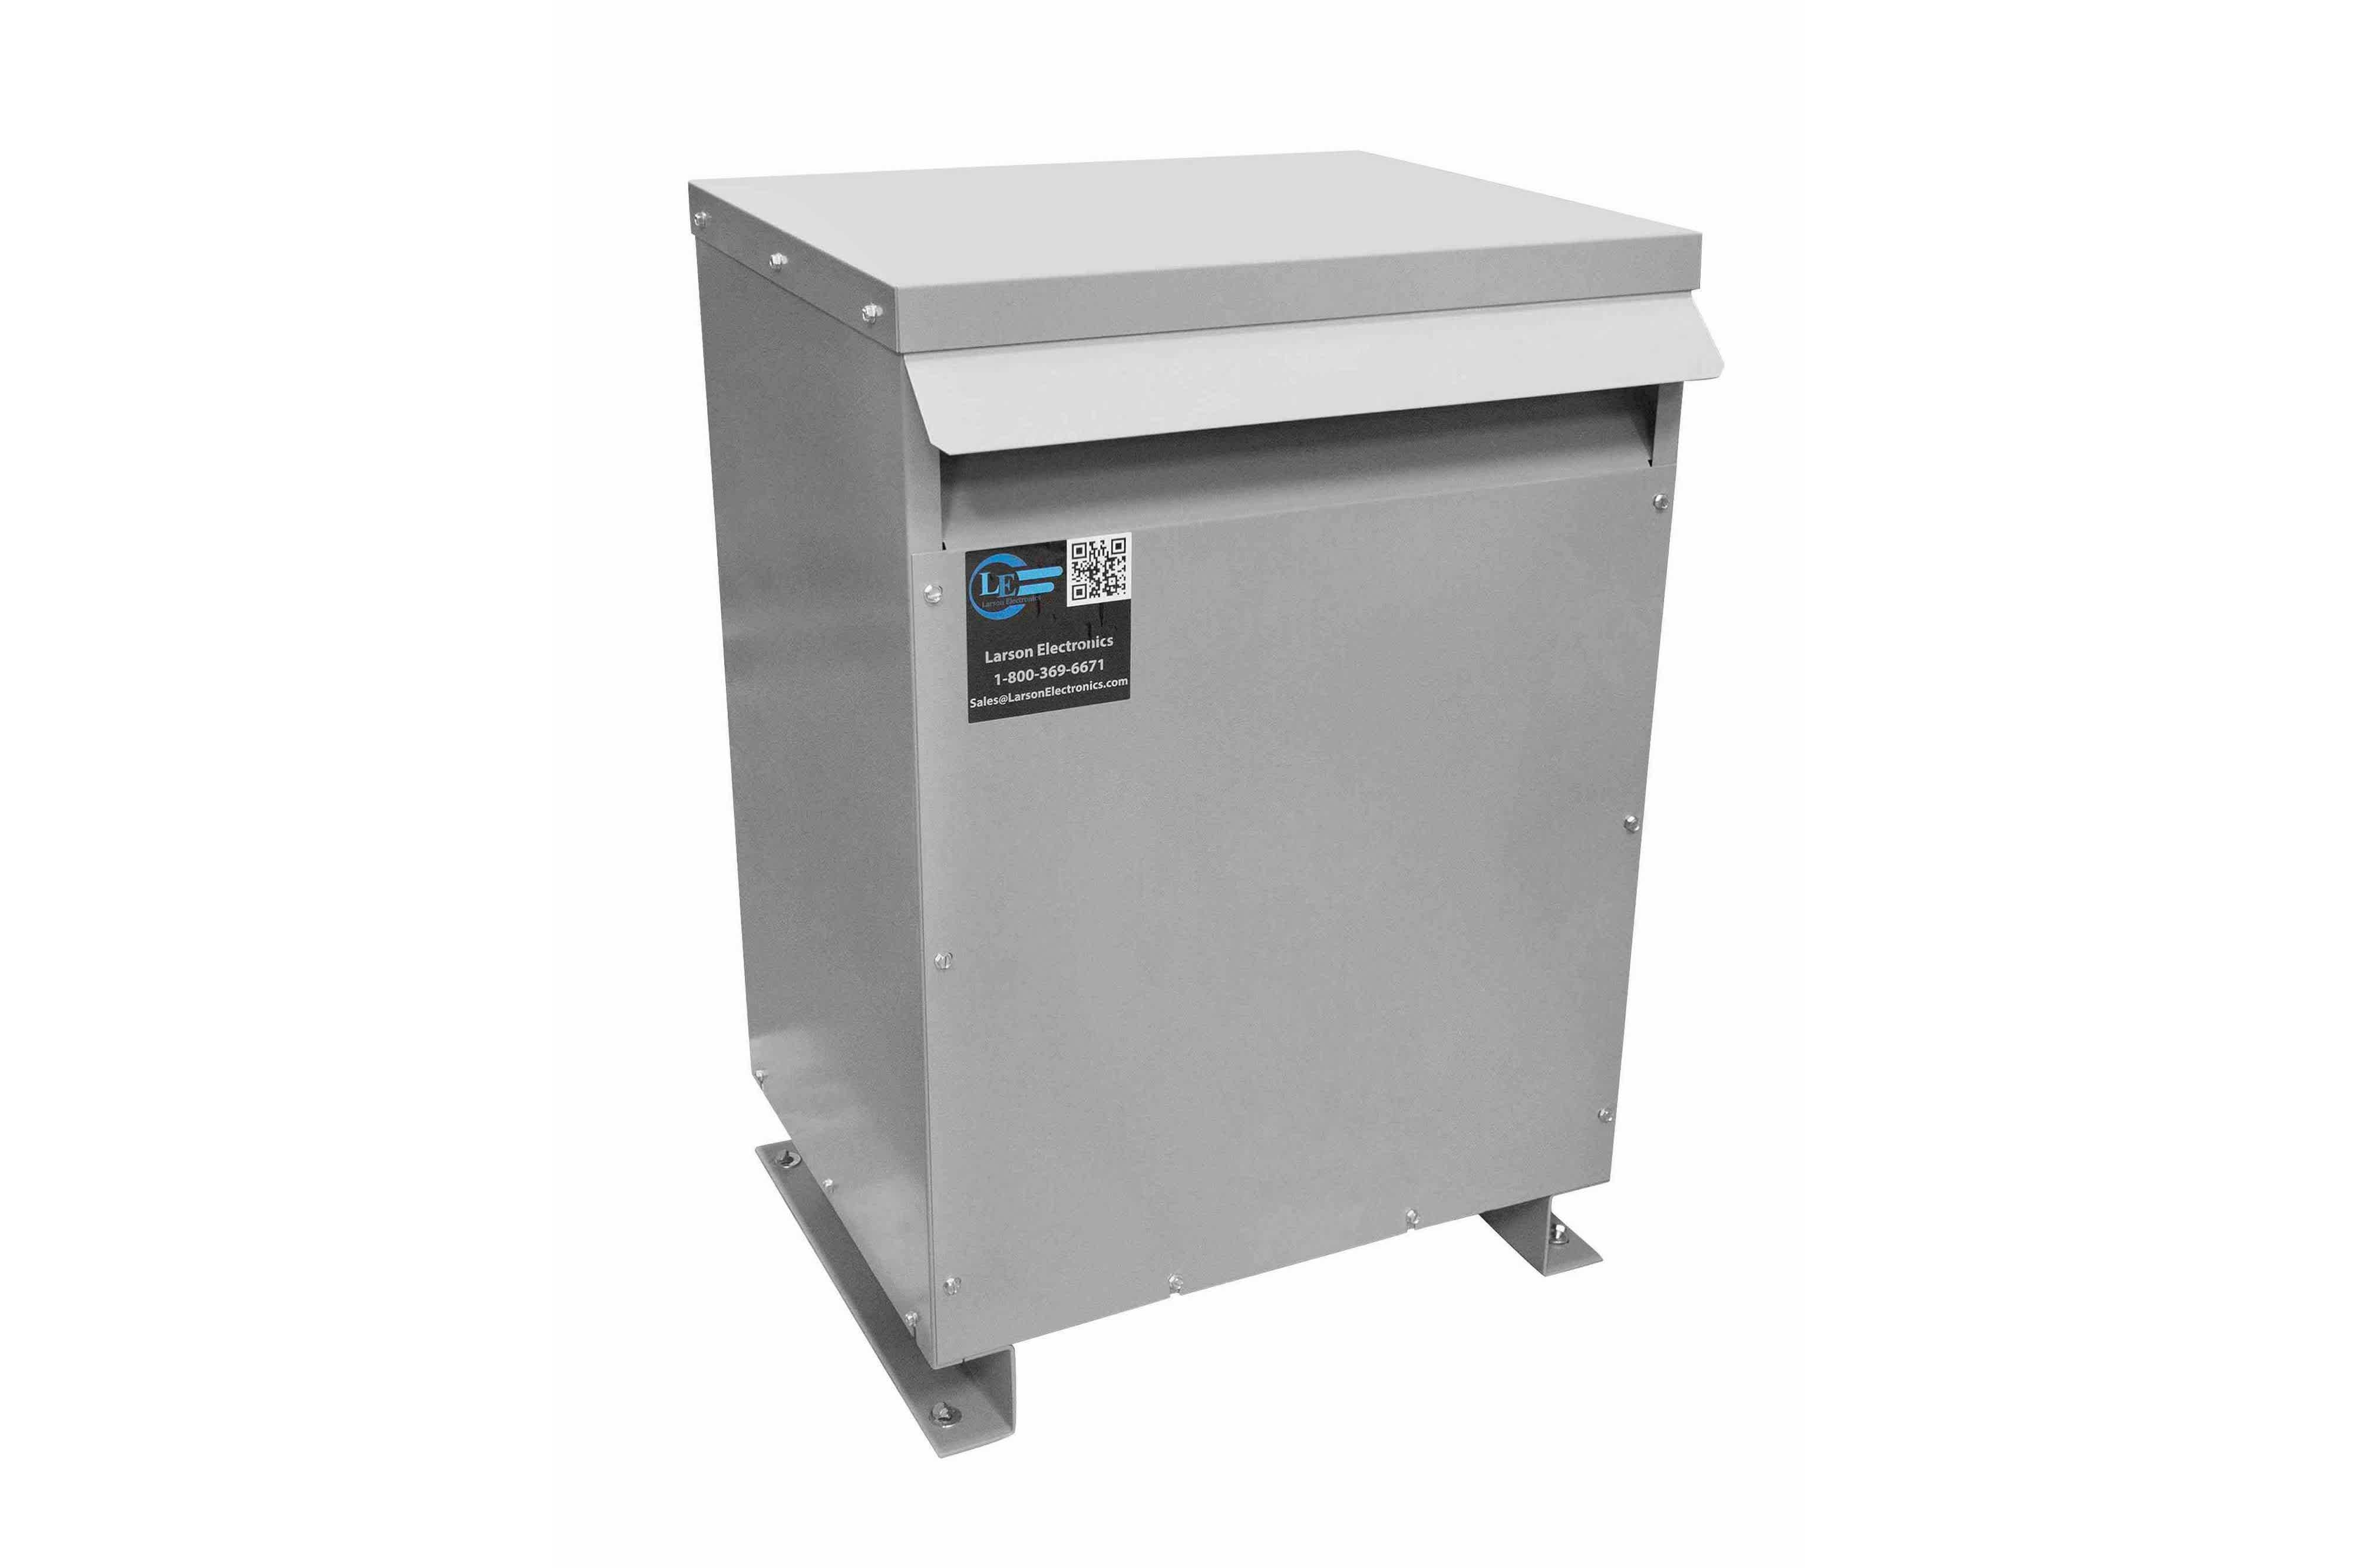 150 kVA 3PH Isolation Transformer, 400V Delta Primary, 208V Delta Secondary, N3R, Ventilated, 60 Hz